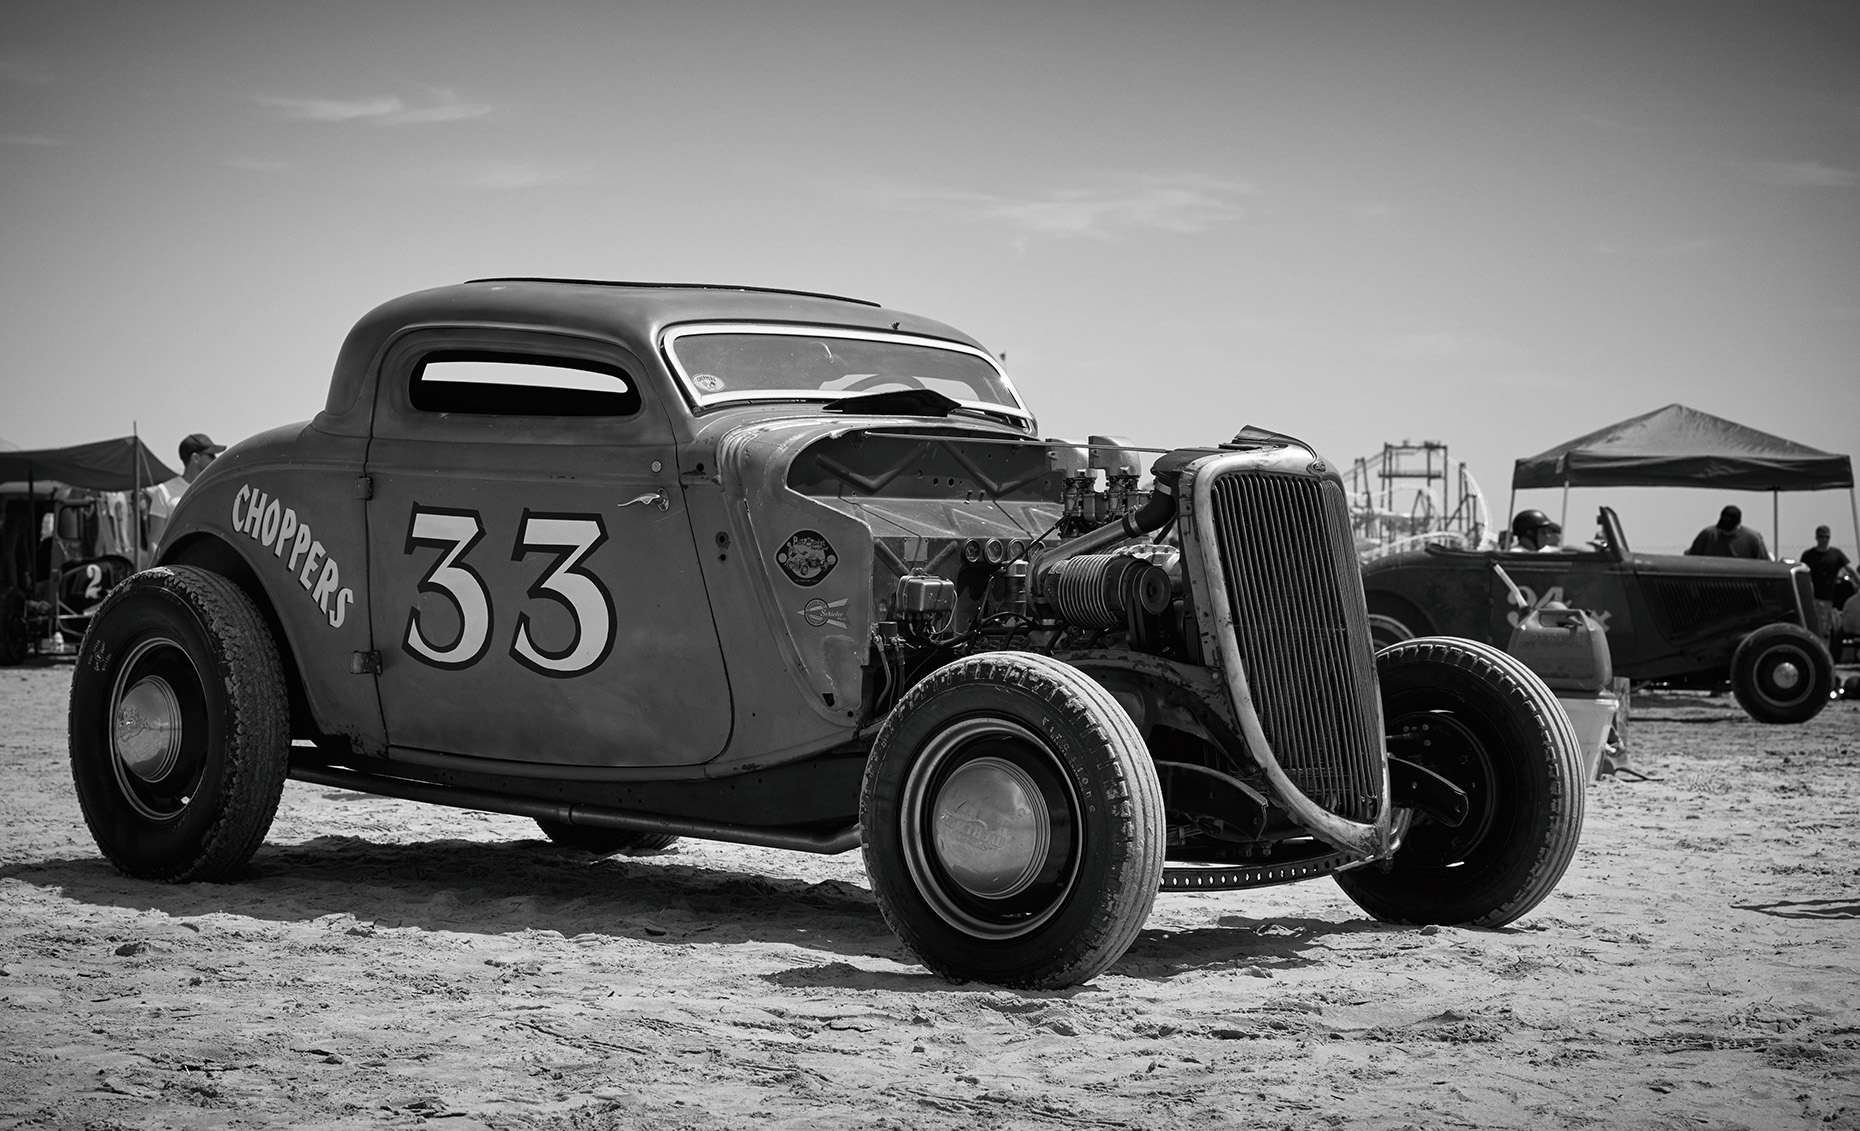 The Race Of Gentlemen 33 Car